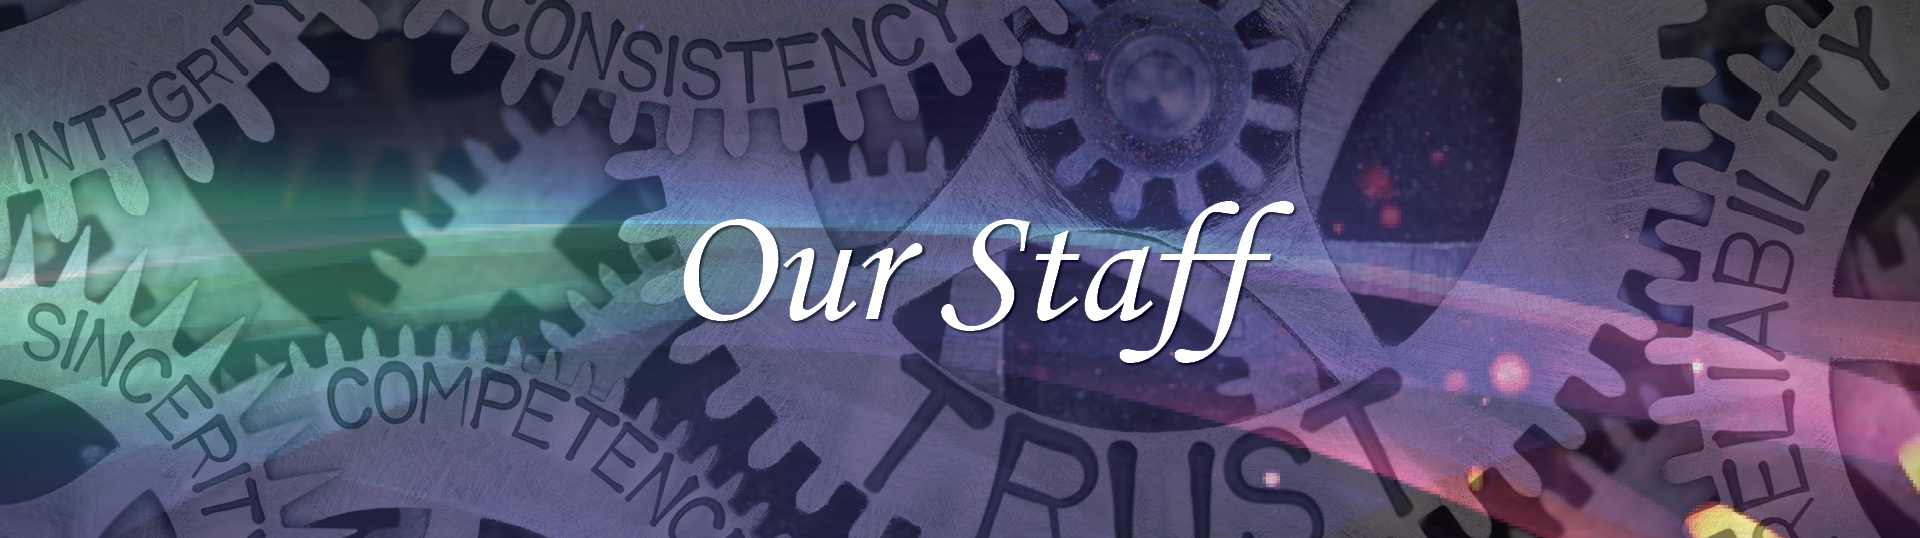 Our Staff Banner Size 1920p x 530p